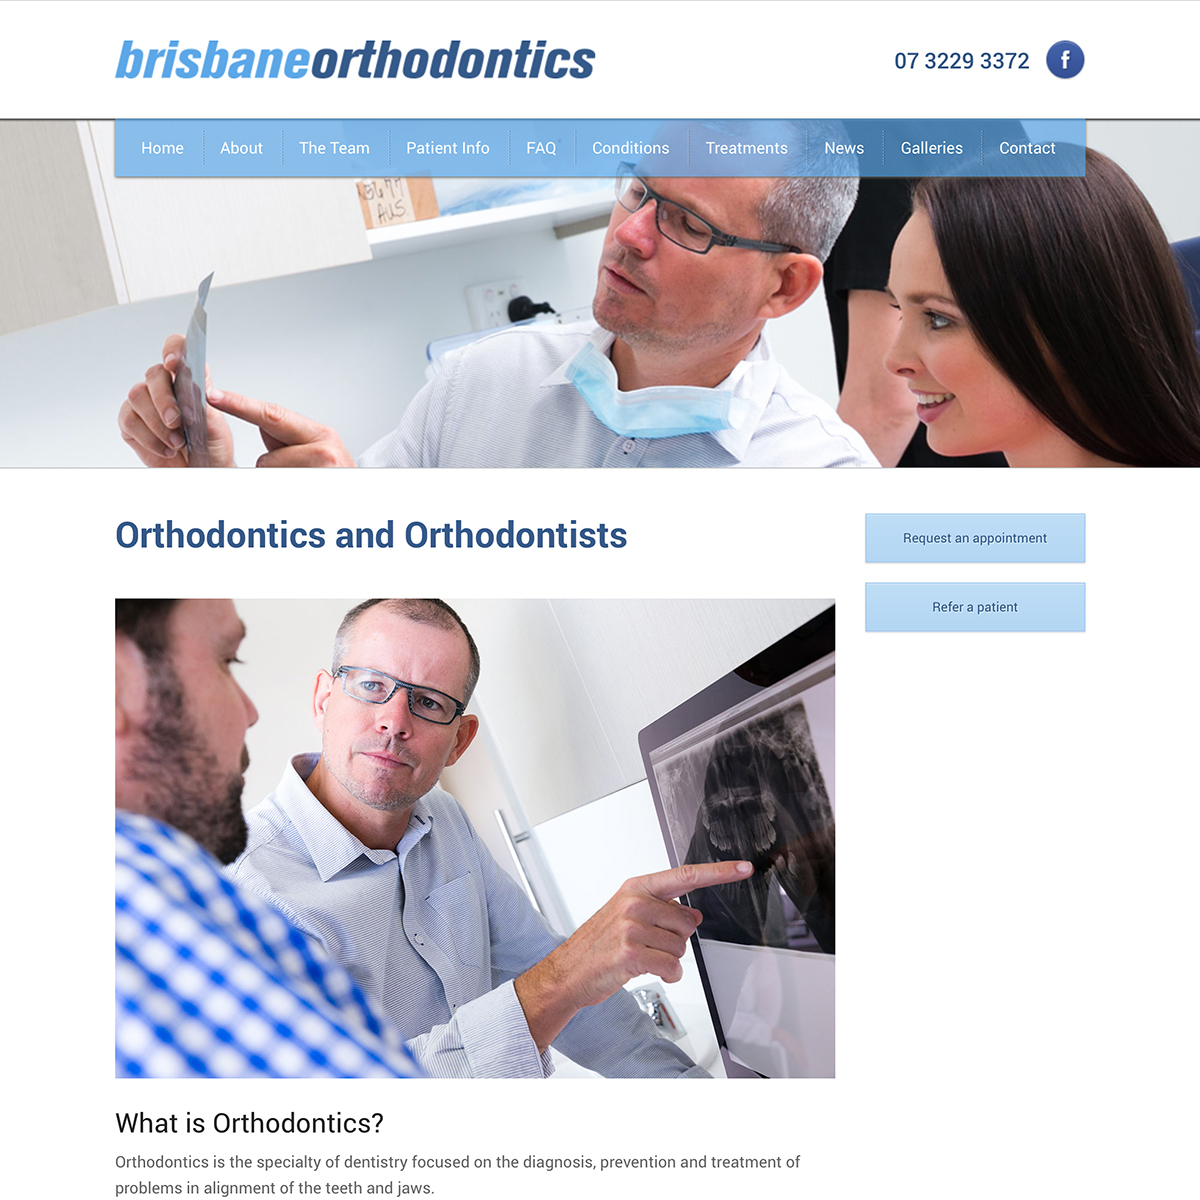 Screenshot of page explaining what orthodontics is